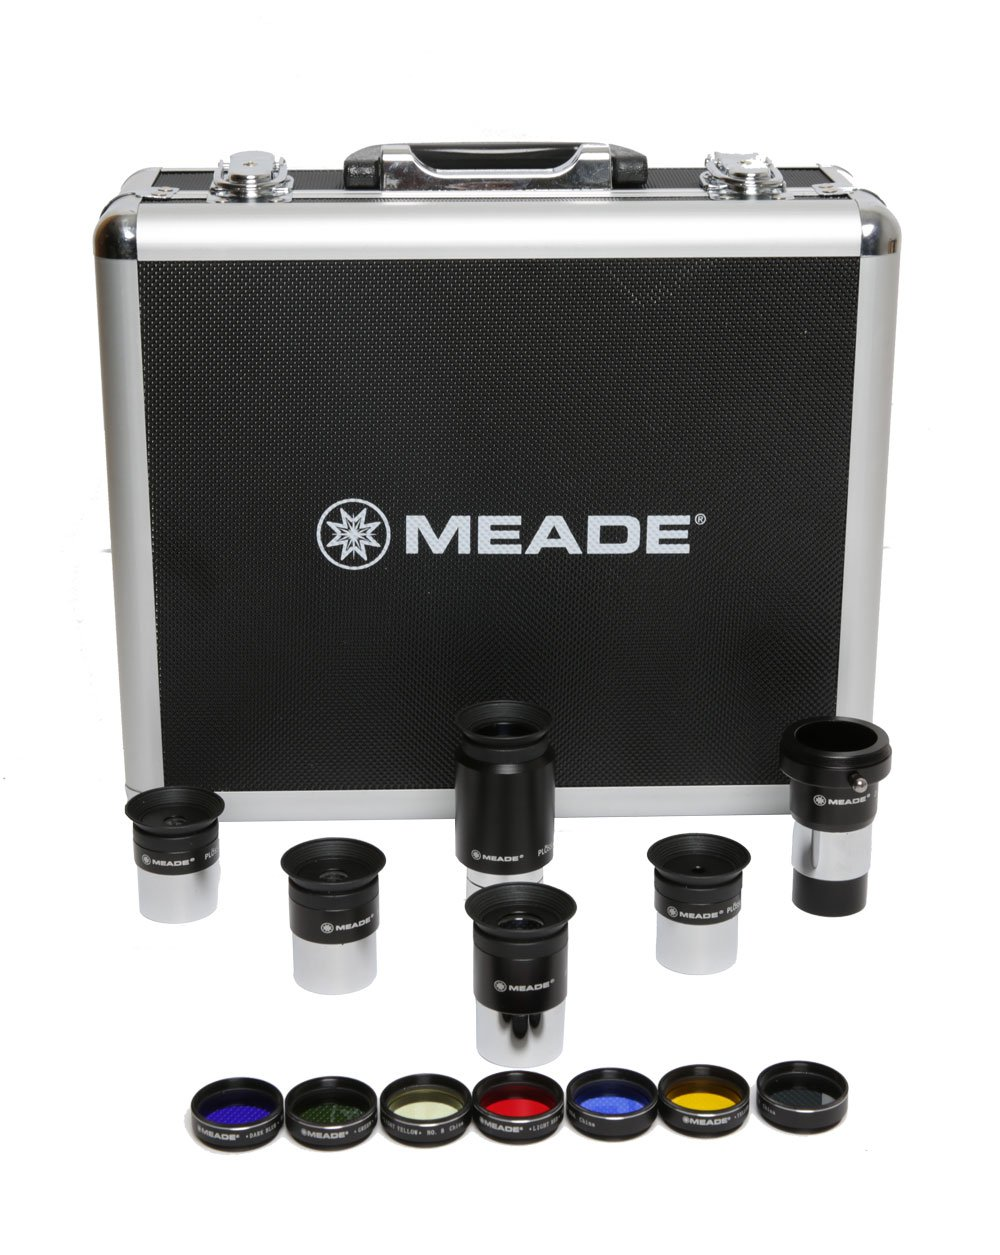 Meade Instruments 607001 Series 4000 1.25-Inch Eyepiece and Filter Set (Black) by Meade Instruments